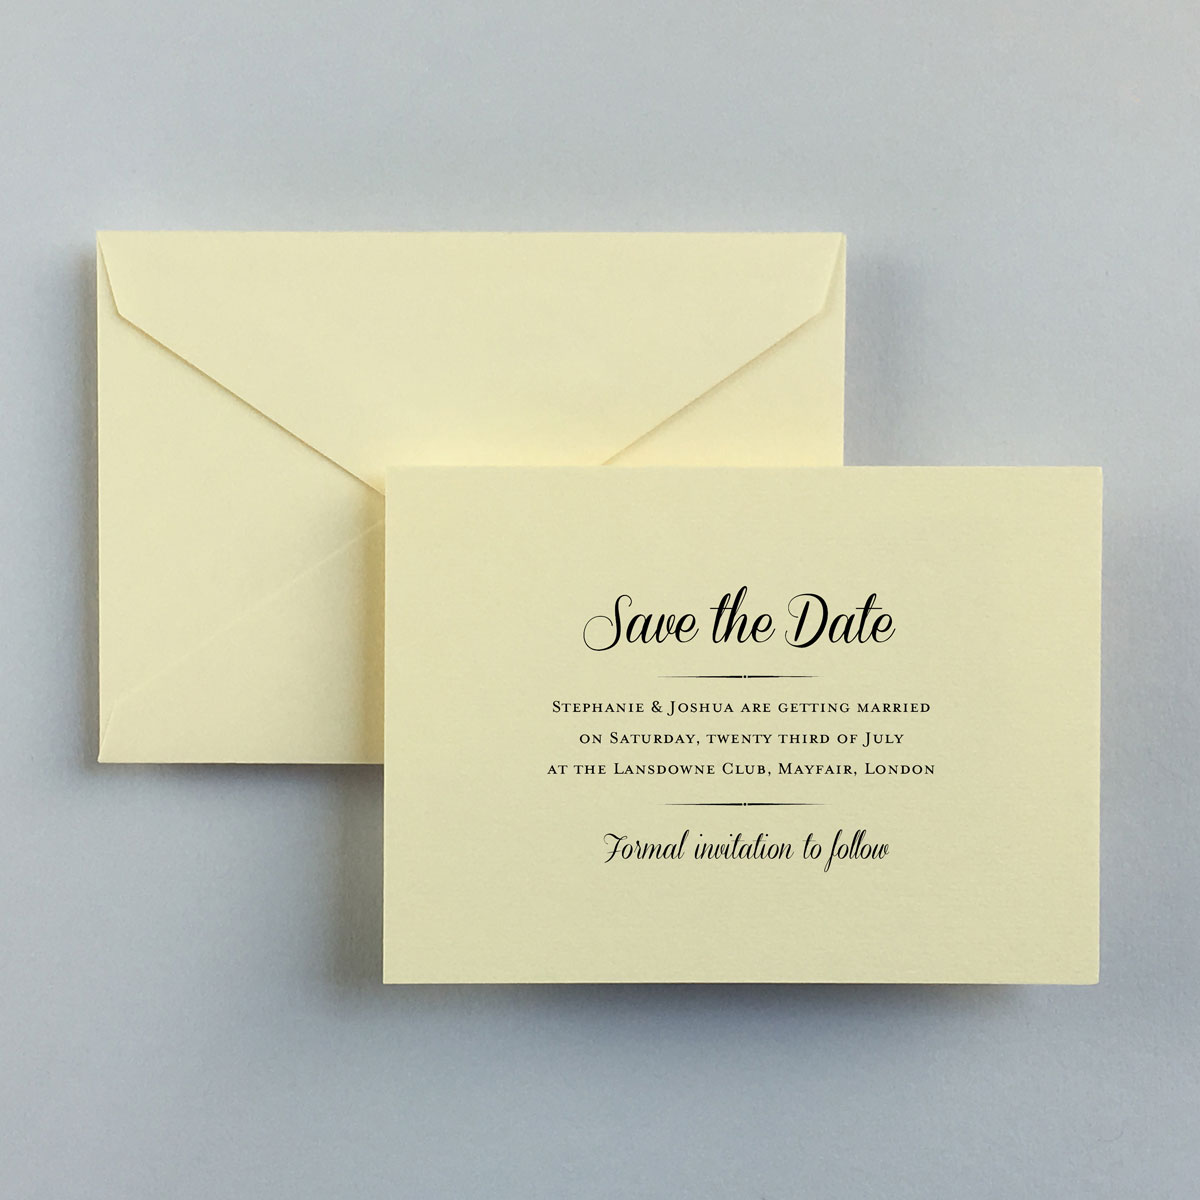 Stephanie Save the Date Cards - Wedding Stationery